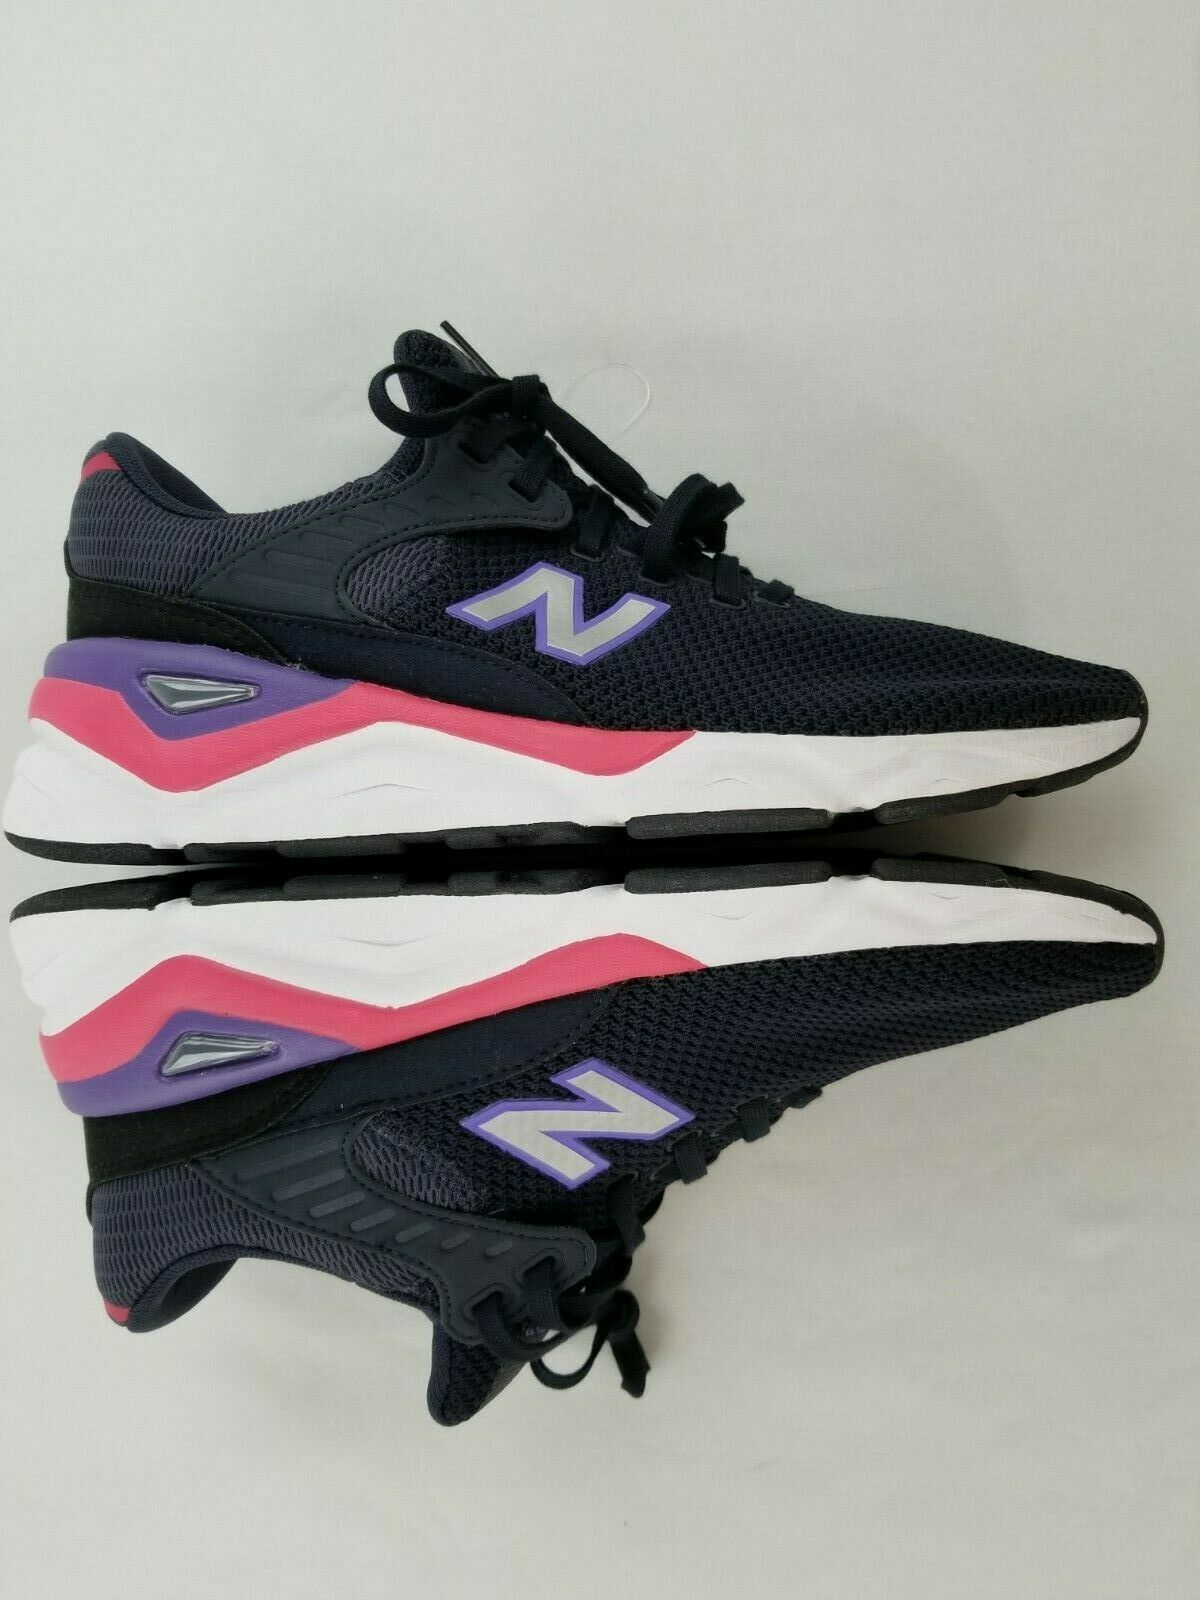 new New Balance men shoes sneakers X-90 running MSX90CRC grey 7.5 D MSRP $99